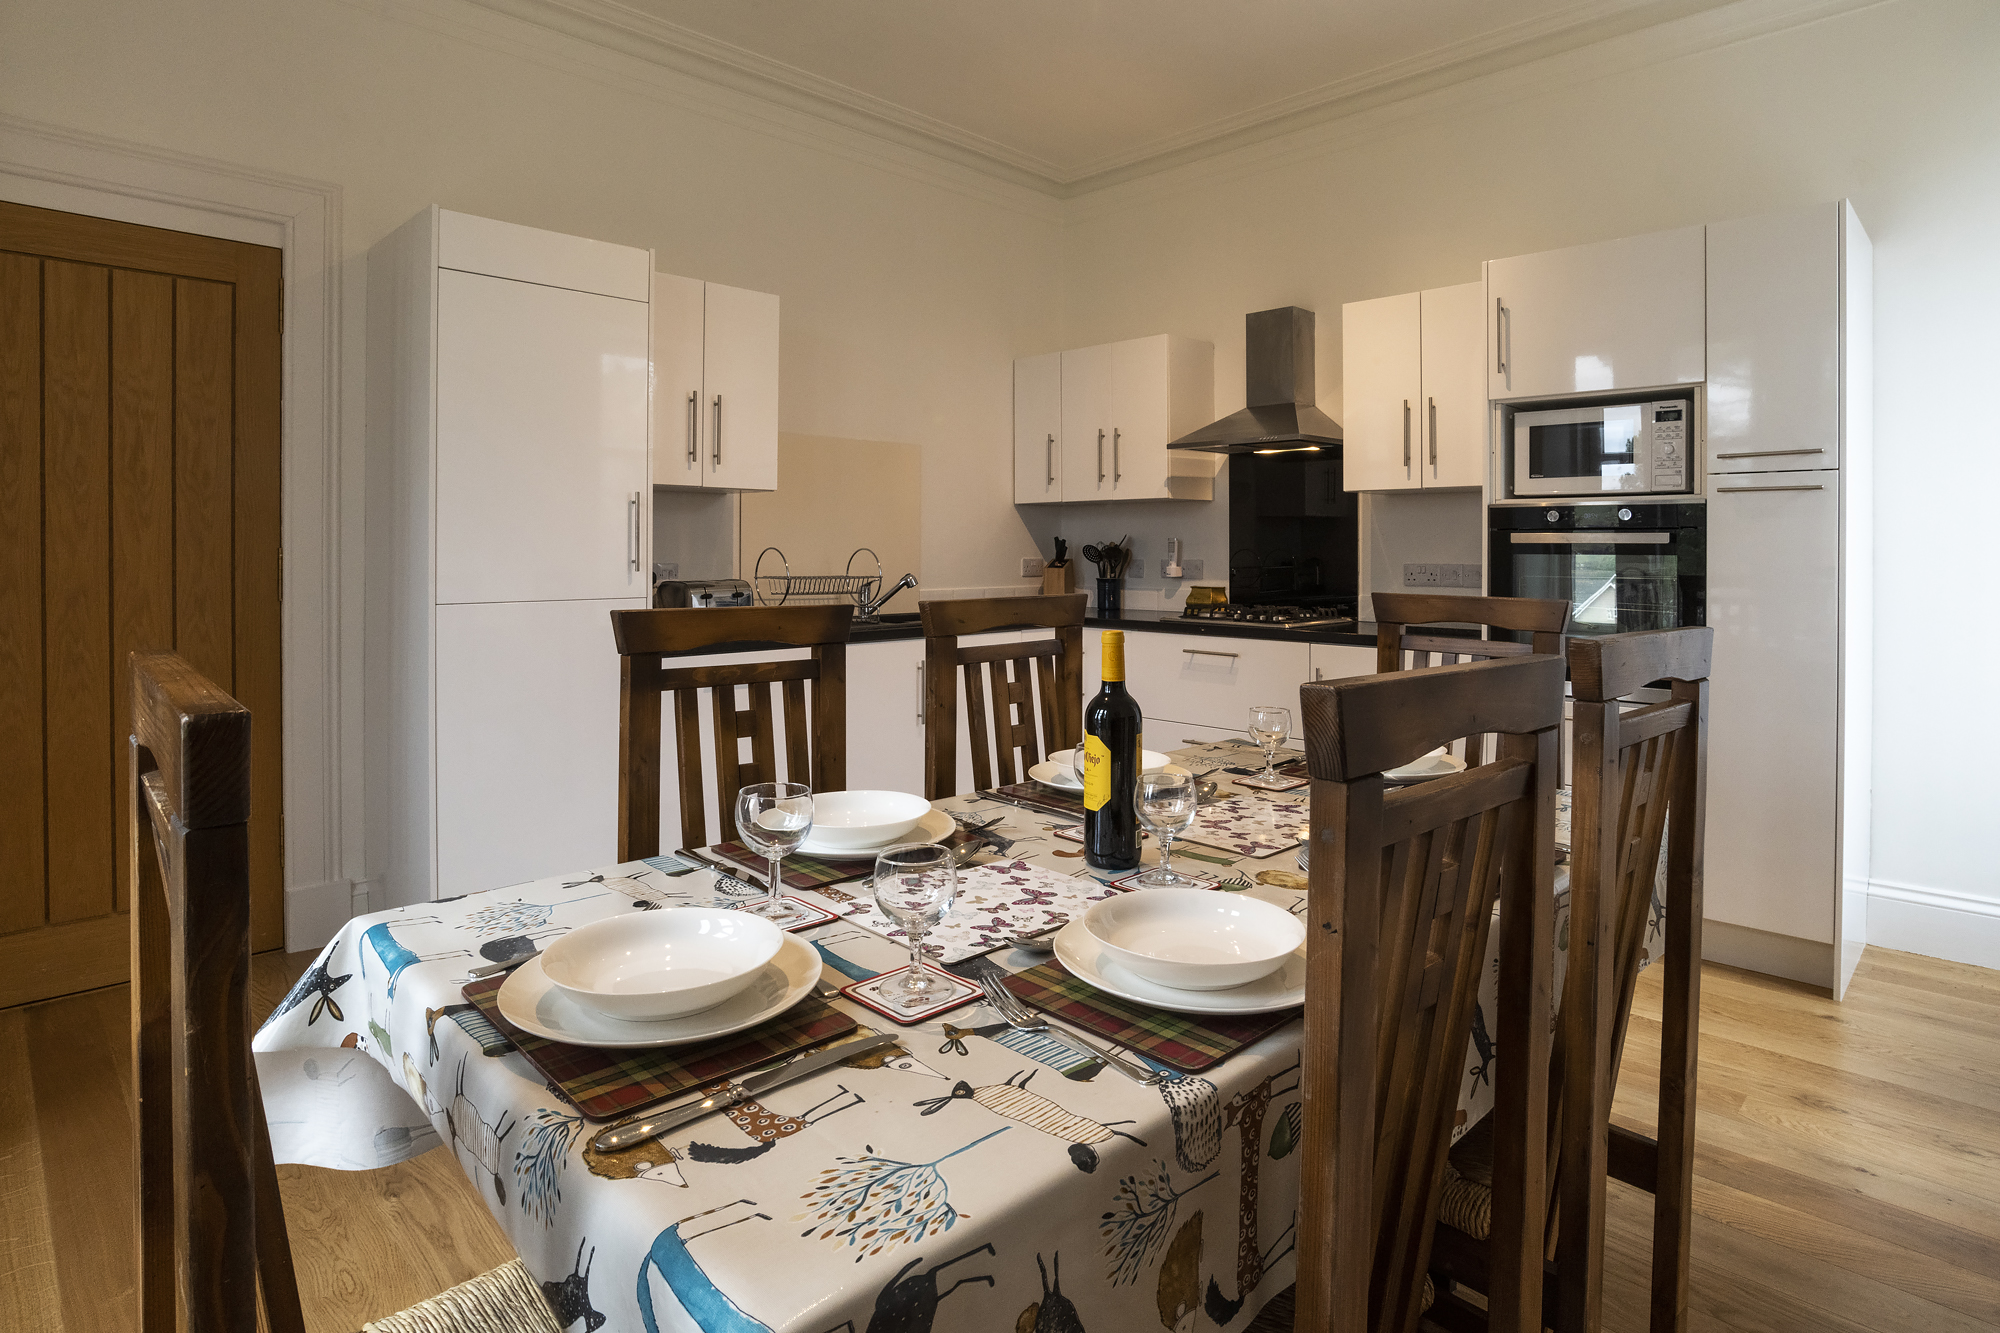 Kitchen/diner - A new kitchen diner with dishwasher, gas hob, electric oven and microwave. Fully stocked with everything you need for a self catering holiday.